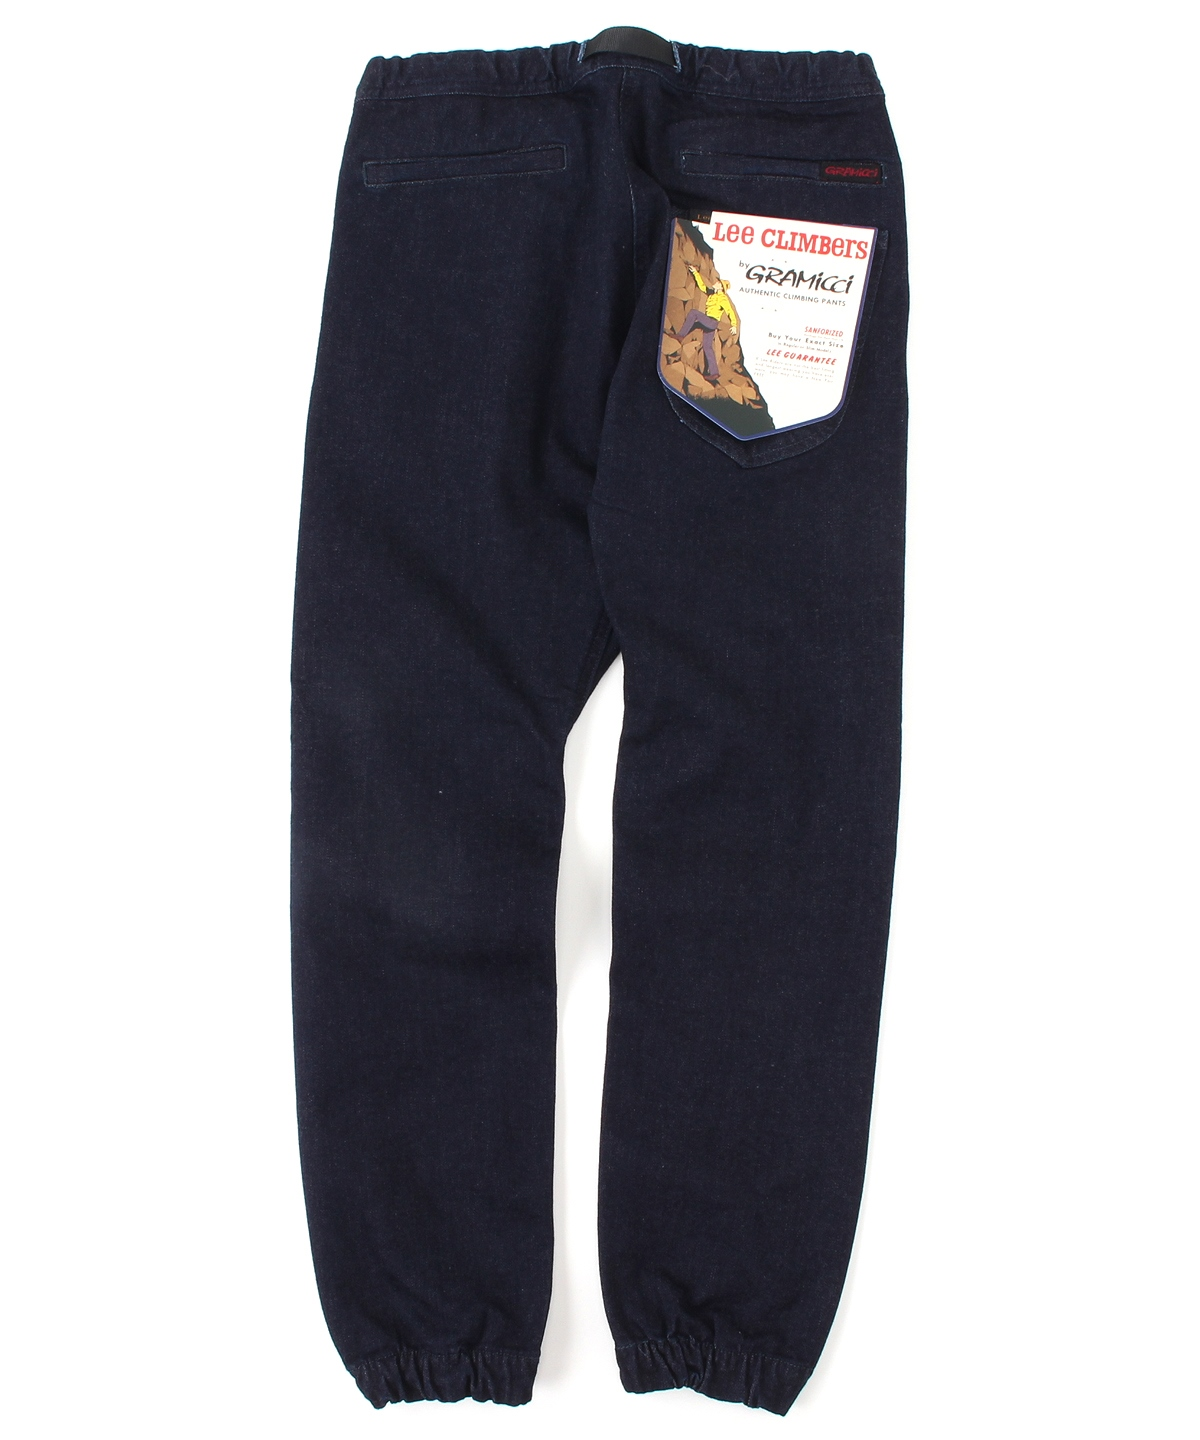 CLINBING JOGER CROPPED PANTS